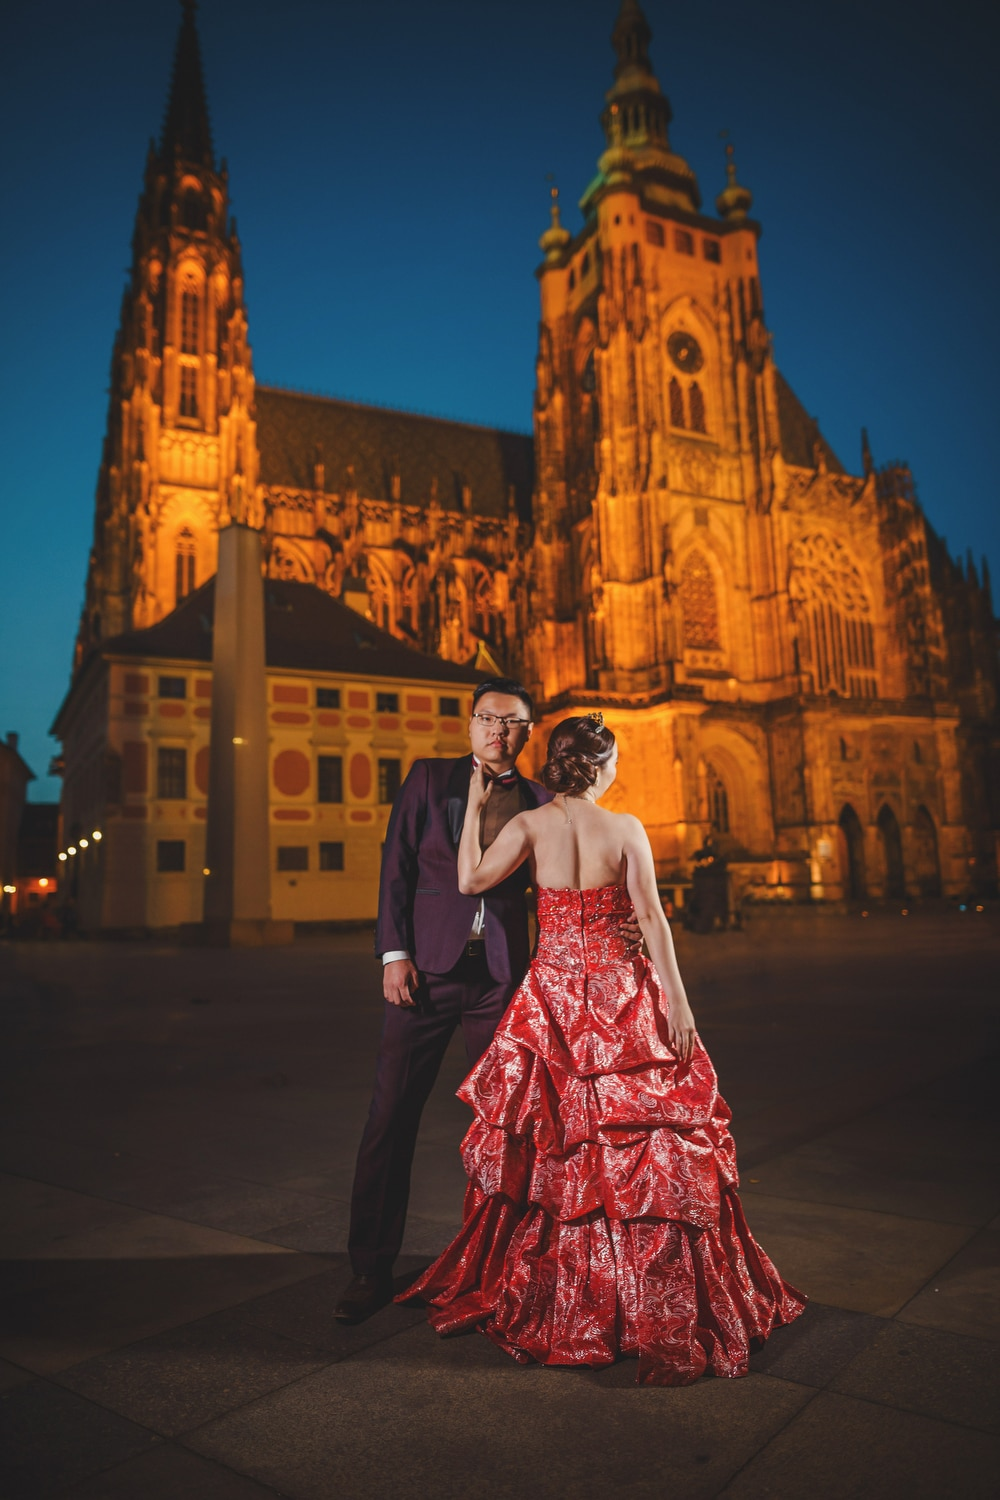 Prague Castle, young couple standing, red dress, night image, St. Vitus, blue sky